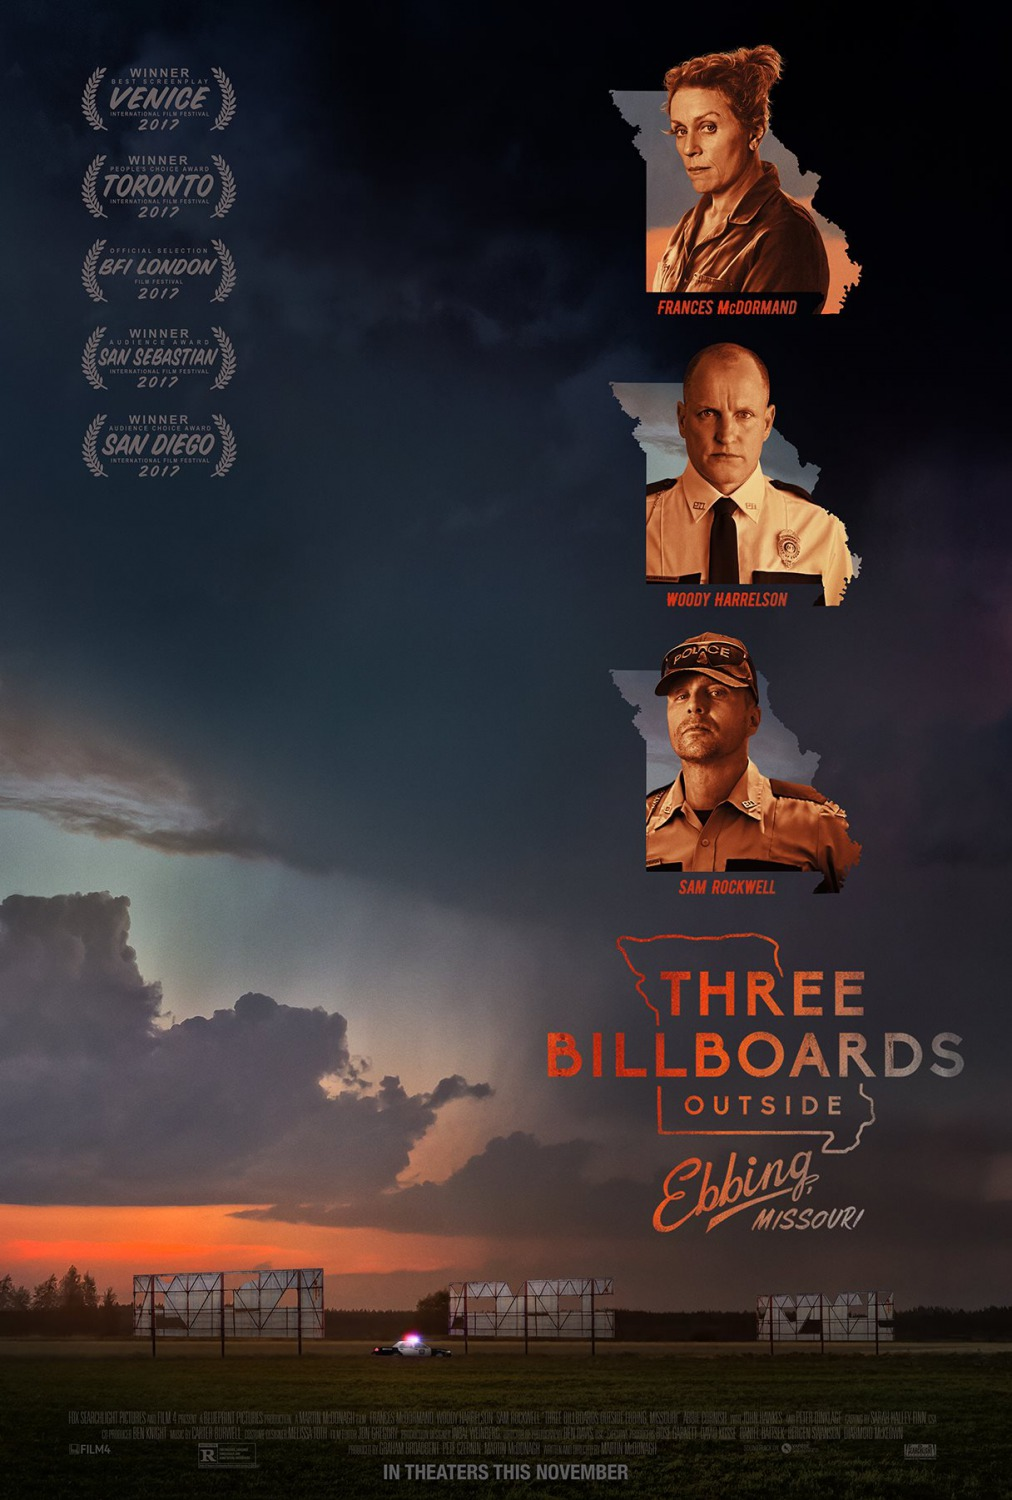 Three Billboards Outside Ebbing Missouri - Vibes Magazine Hungary - Popcorn The Movie Guide